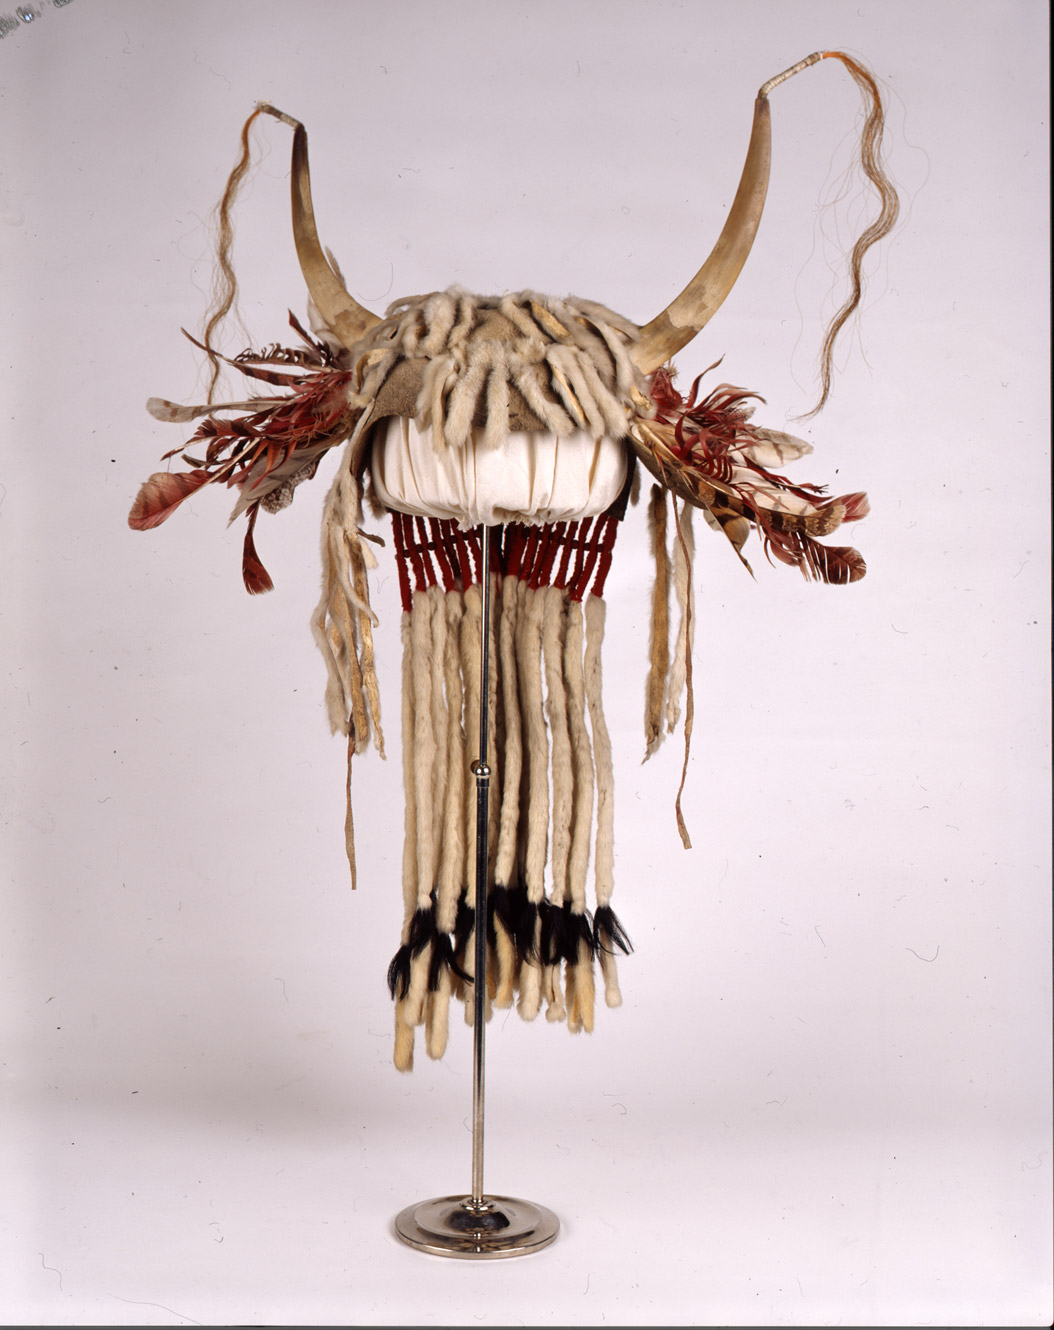 """Weasel Tail Headdress.""  This very special headdress was decorated with weasel tails.  It would have been worn for ceremonies.  This headdress was owned by Crazy Dog. SHSND Museum 00973"